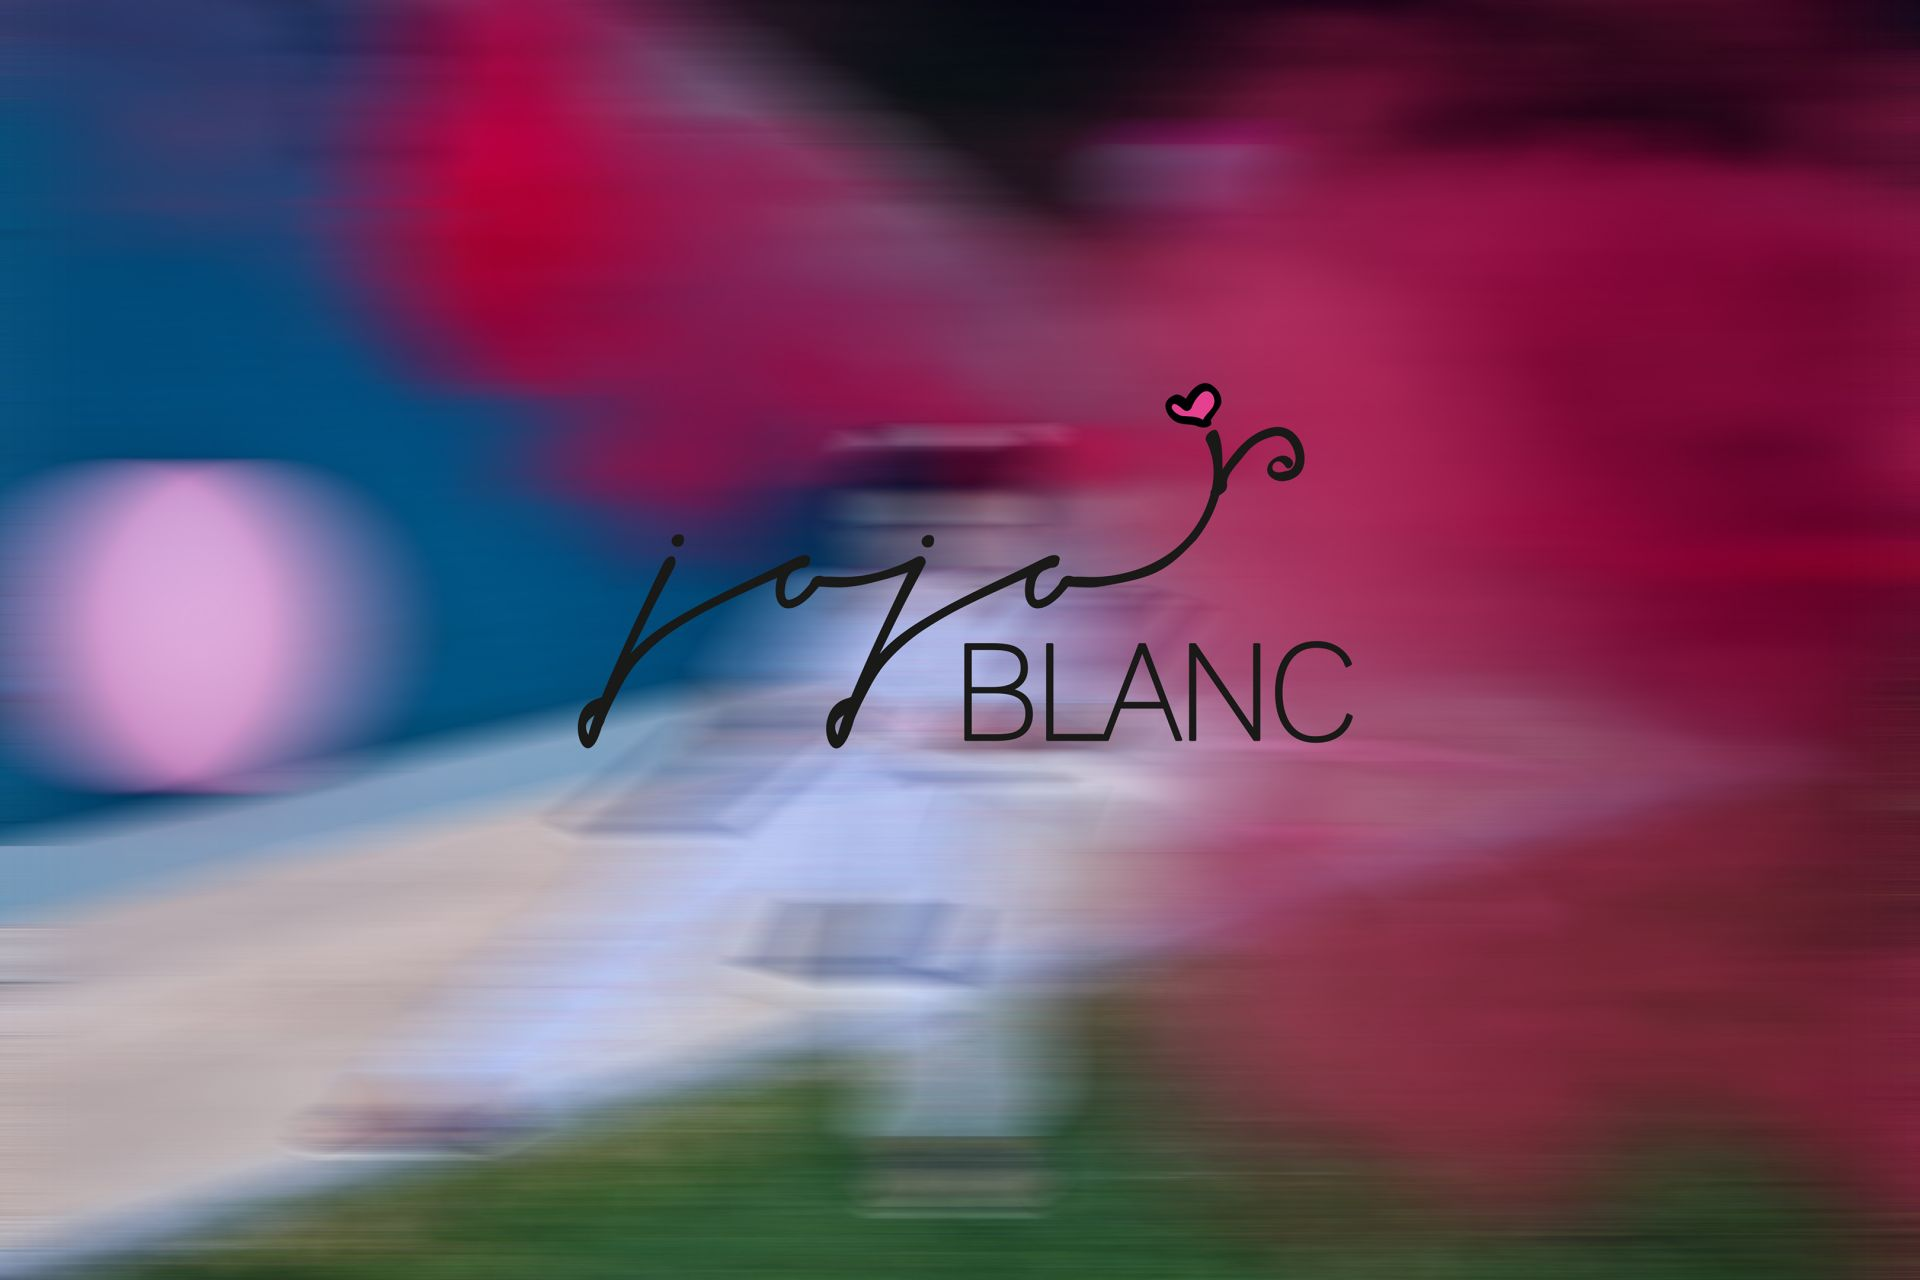 BY MICHAEL KORONIS FOR JOJO BLANC SS 2016